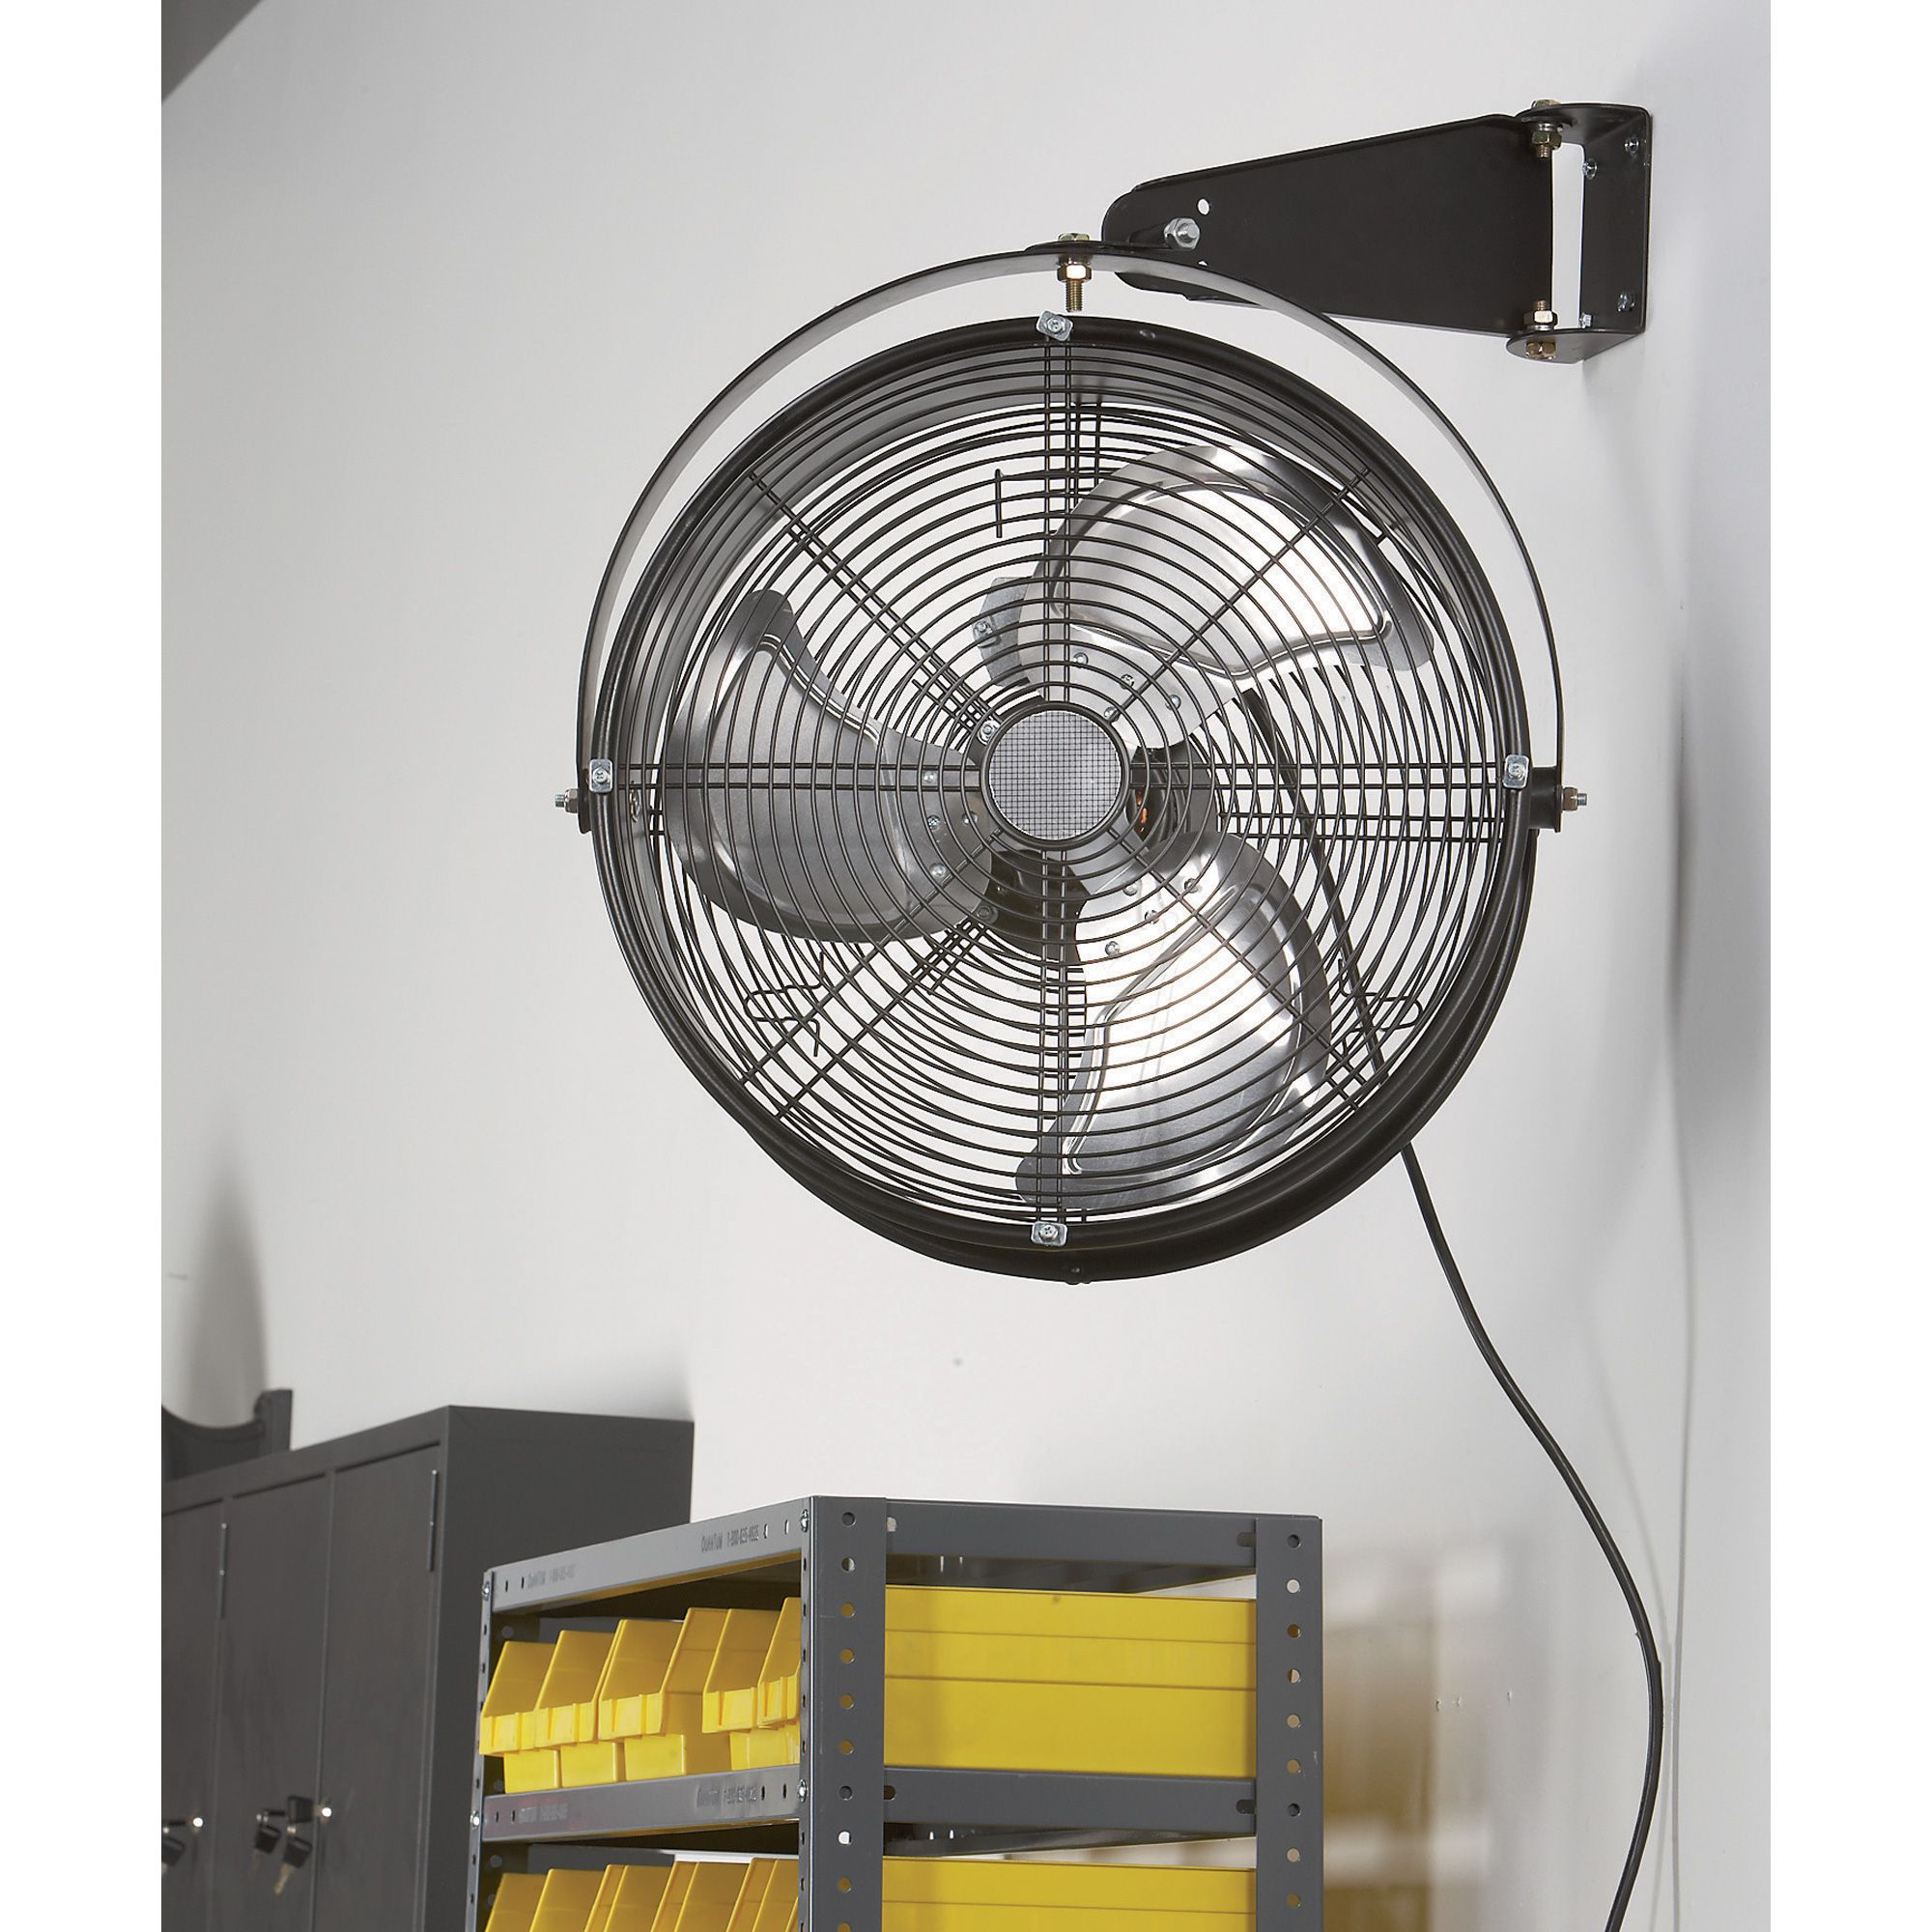 Q Standard Garage Fan 18in Model 18923 Wall Mount Dock Fans Window Ac Unit Garage Ventilation Garage Door Design